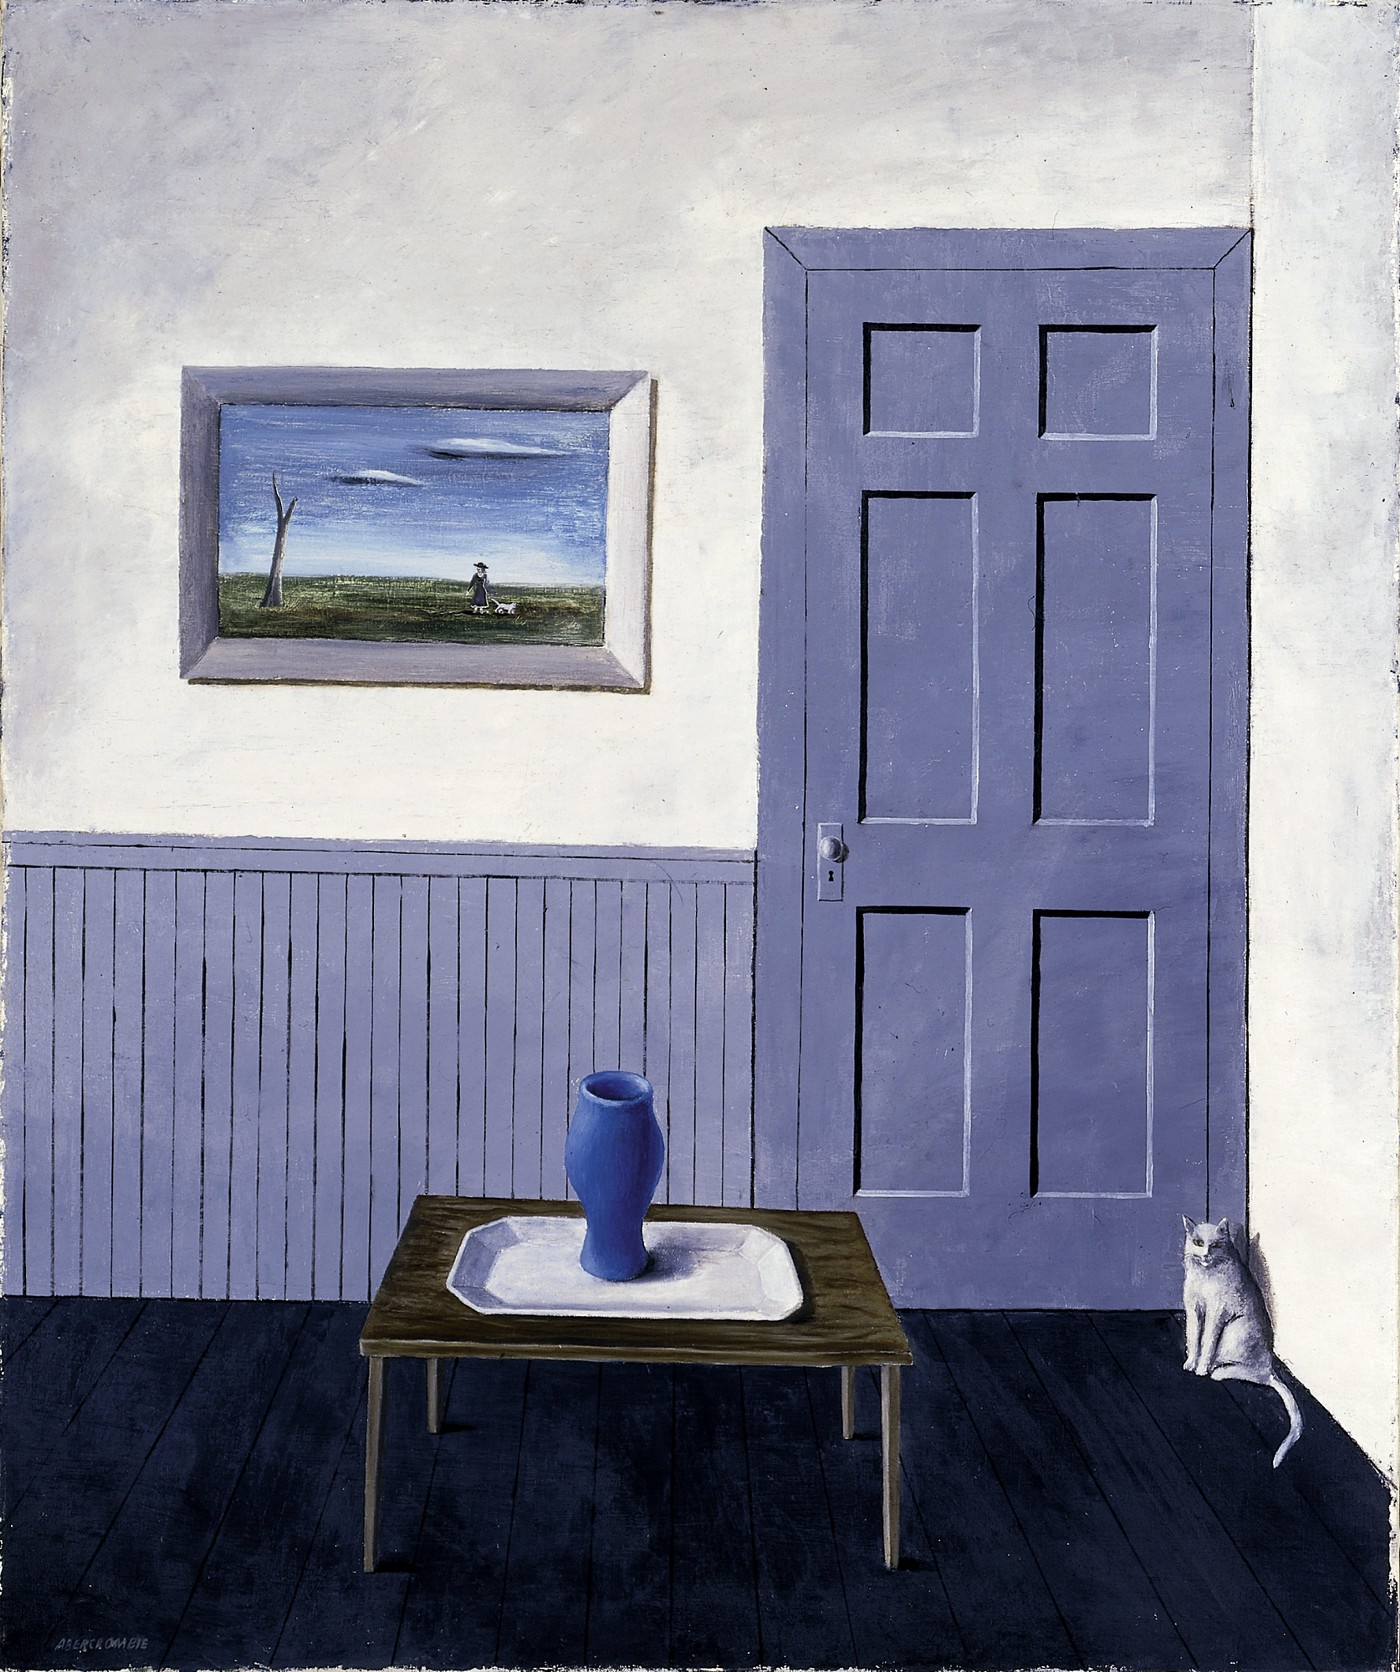 Gertrude Abercrombie, White Cat, ca. 1935–1938, oil on canvas, Smithsonian American Art Museum